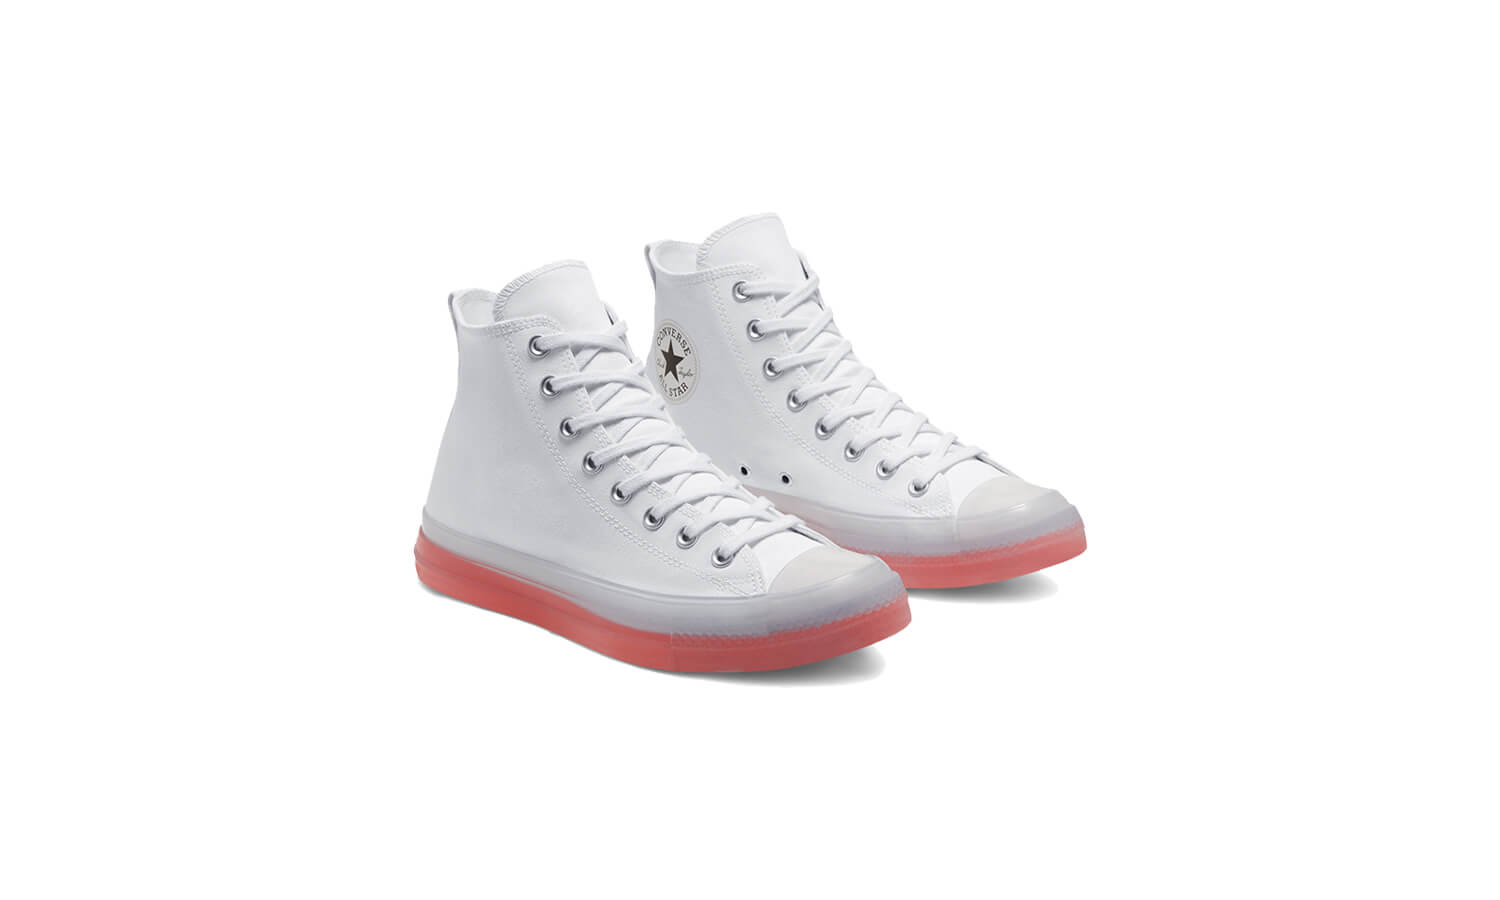 Converse Chuck Taylor All Star CX Mango Sole Pack | snkraddicted